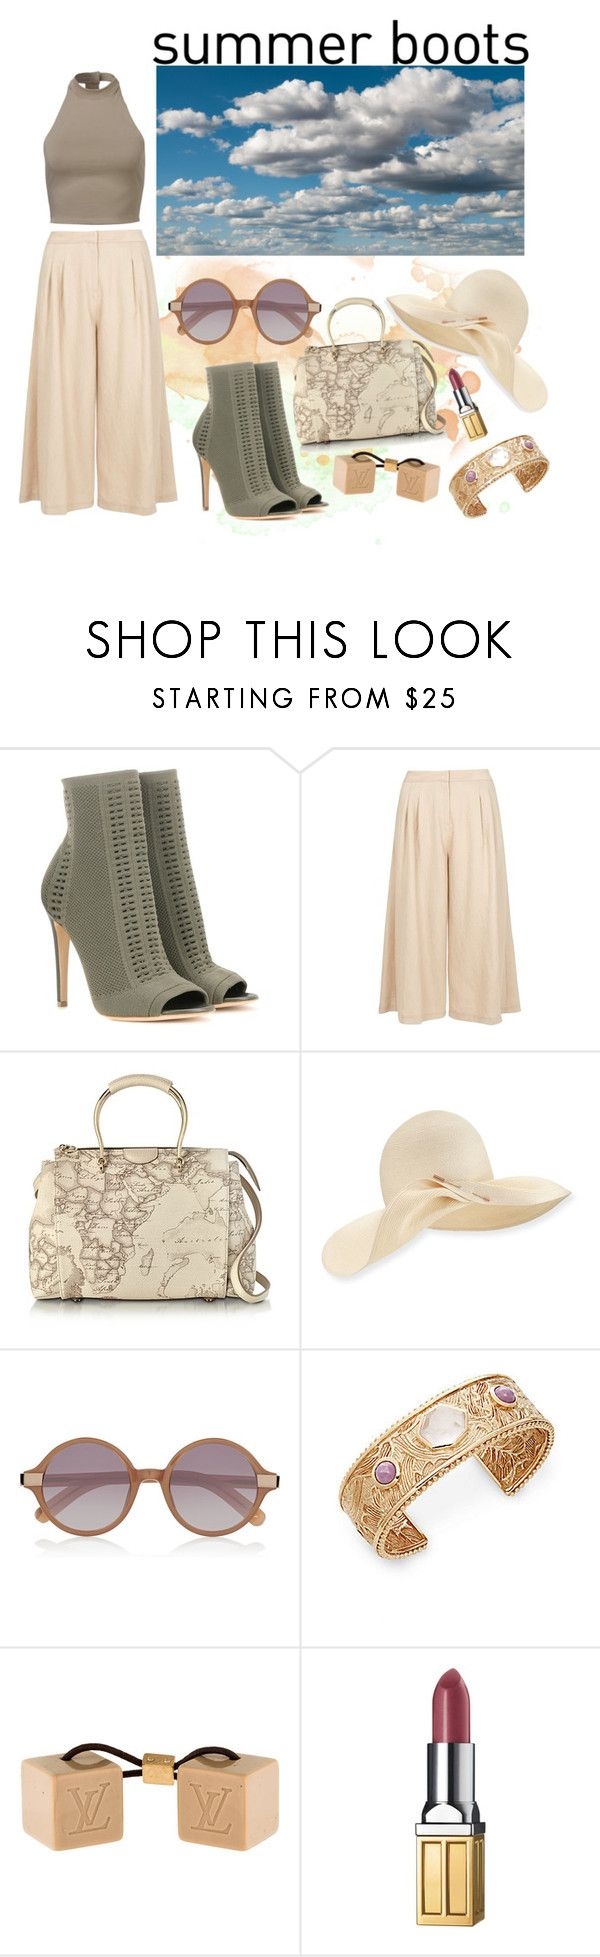 """Summer Boots"" by roo-roo-lu ❤ liked on Polyvore featuring Gianvito Rossi, Dorothy Perkins, Alviero Martini 1° Classe, Eugenia Kim, Elizabeth and James, Stephen Dweck, Louis Vuitton and Elizabeth Arden"